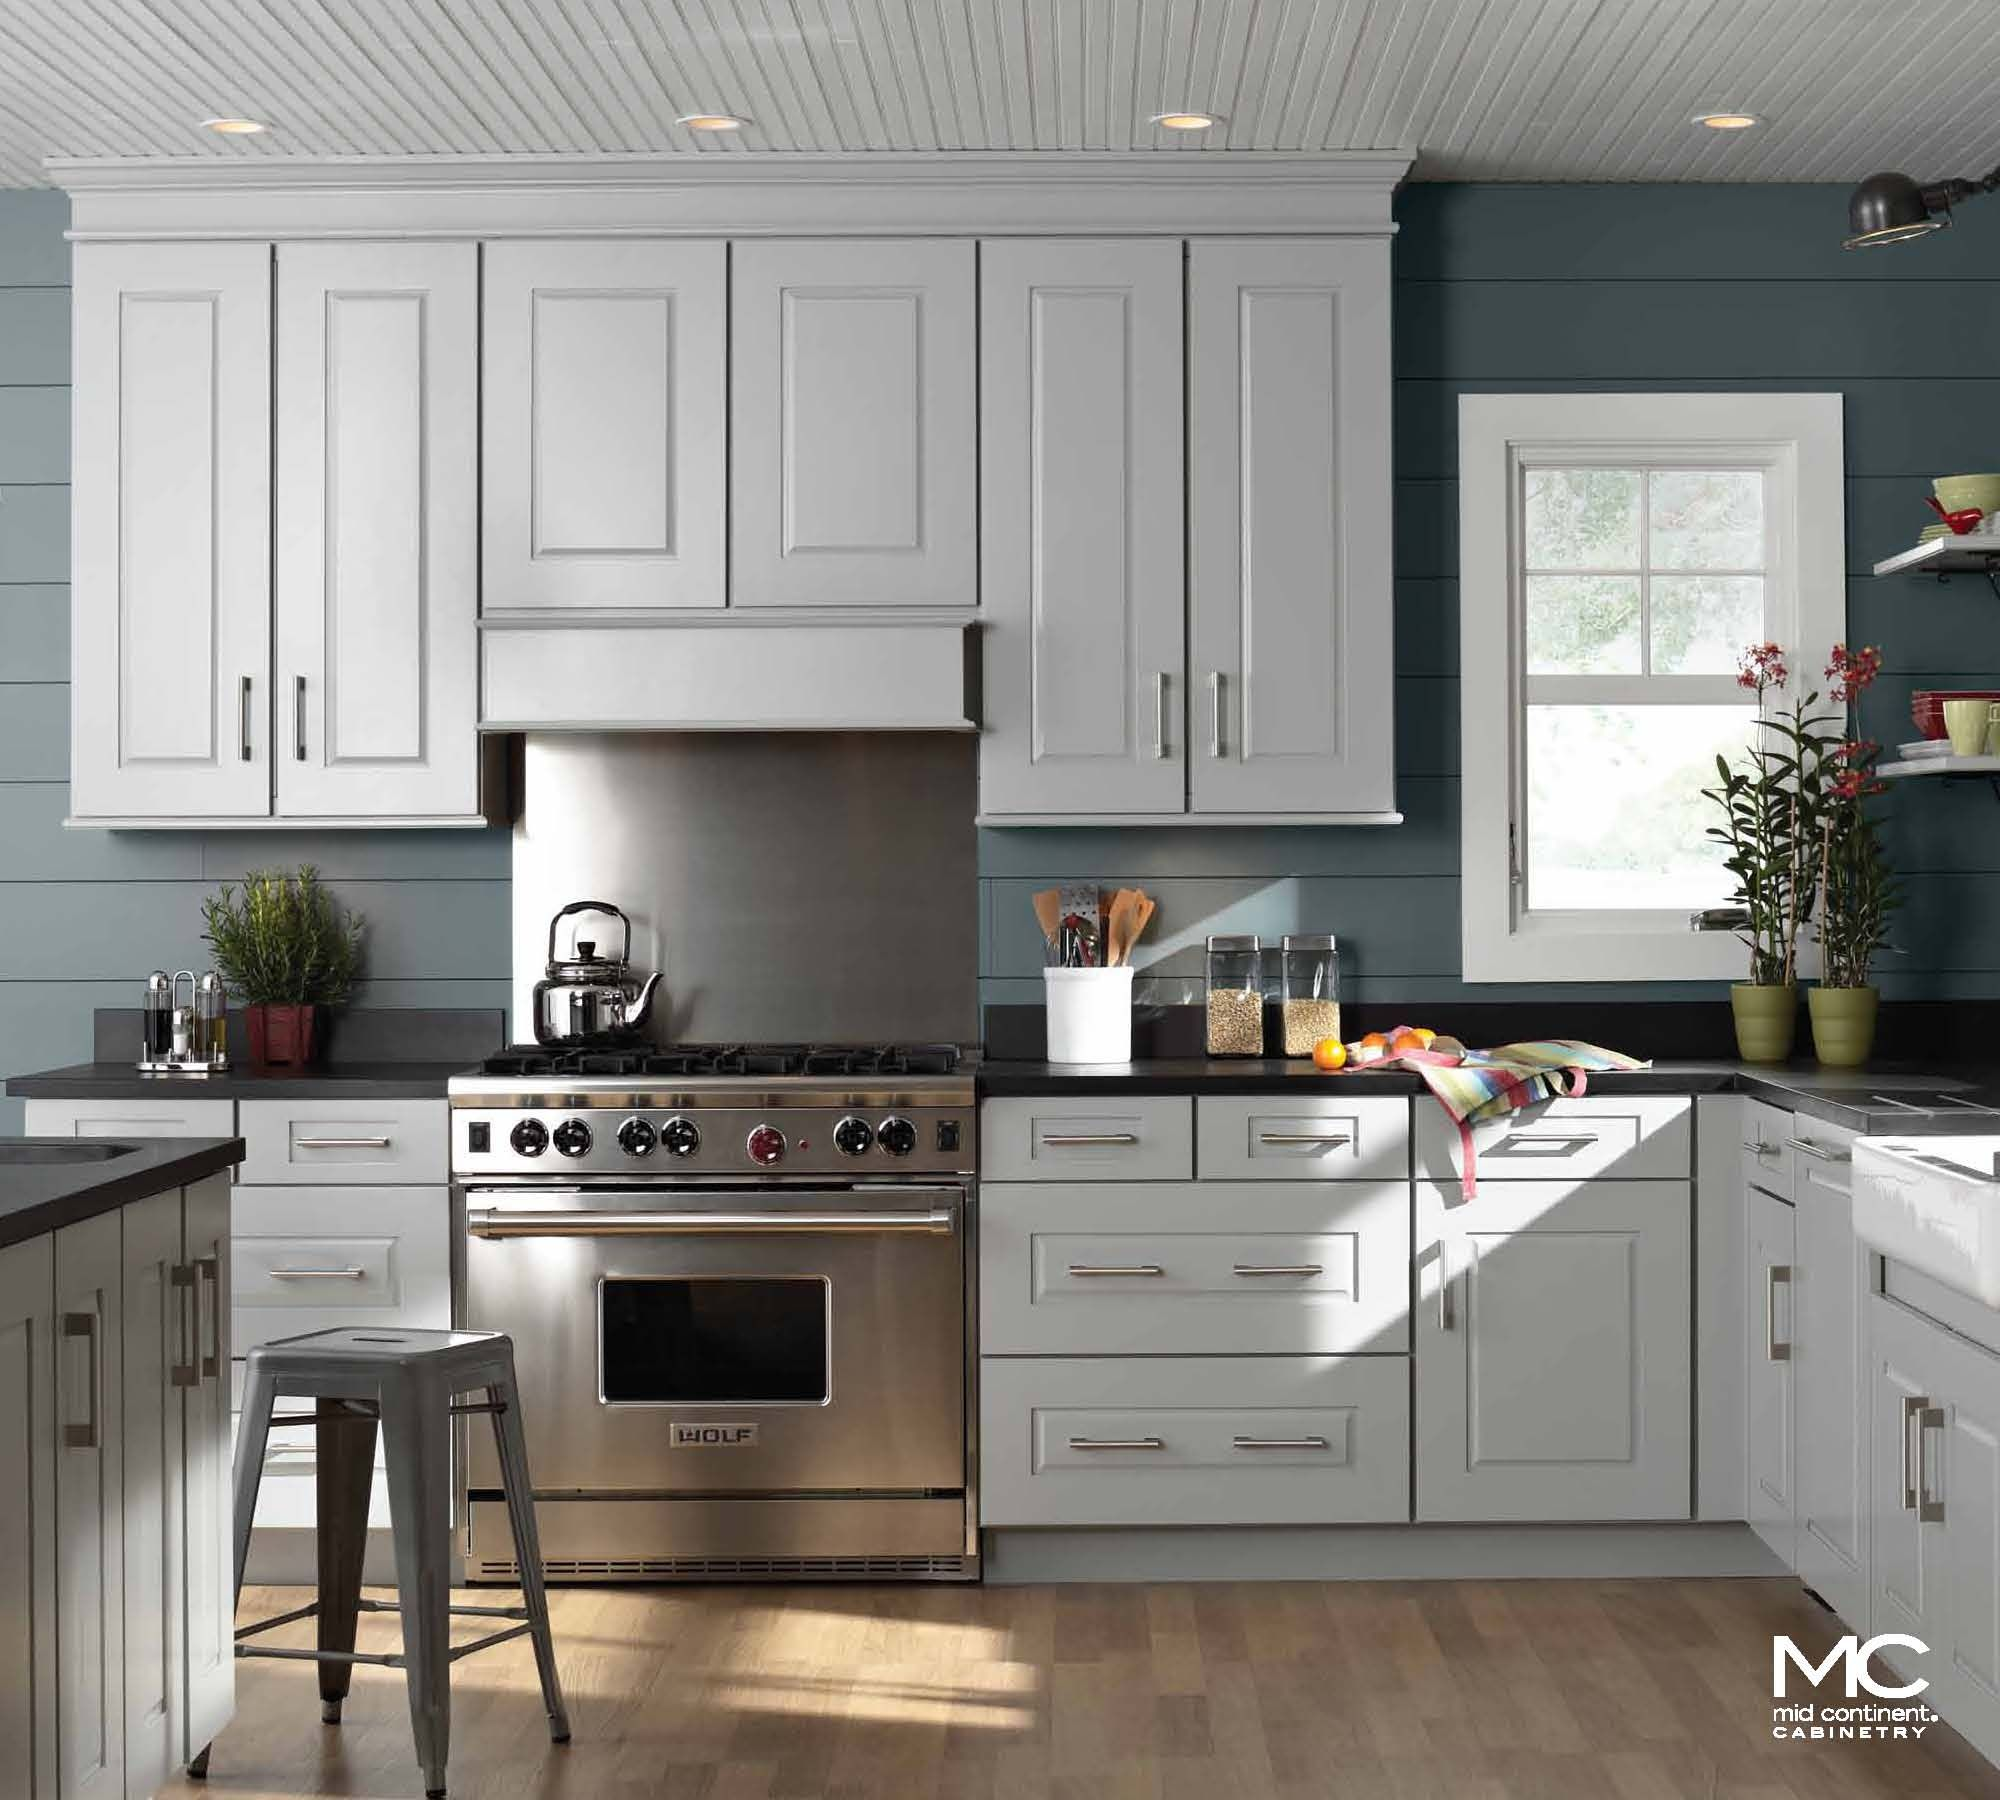 Norcraft Kitchen Cabinets Mastercraft Kitchen Cabinets Denver Mastercraft Starmark